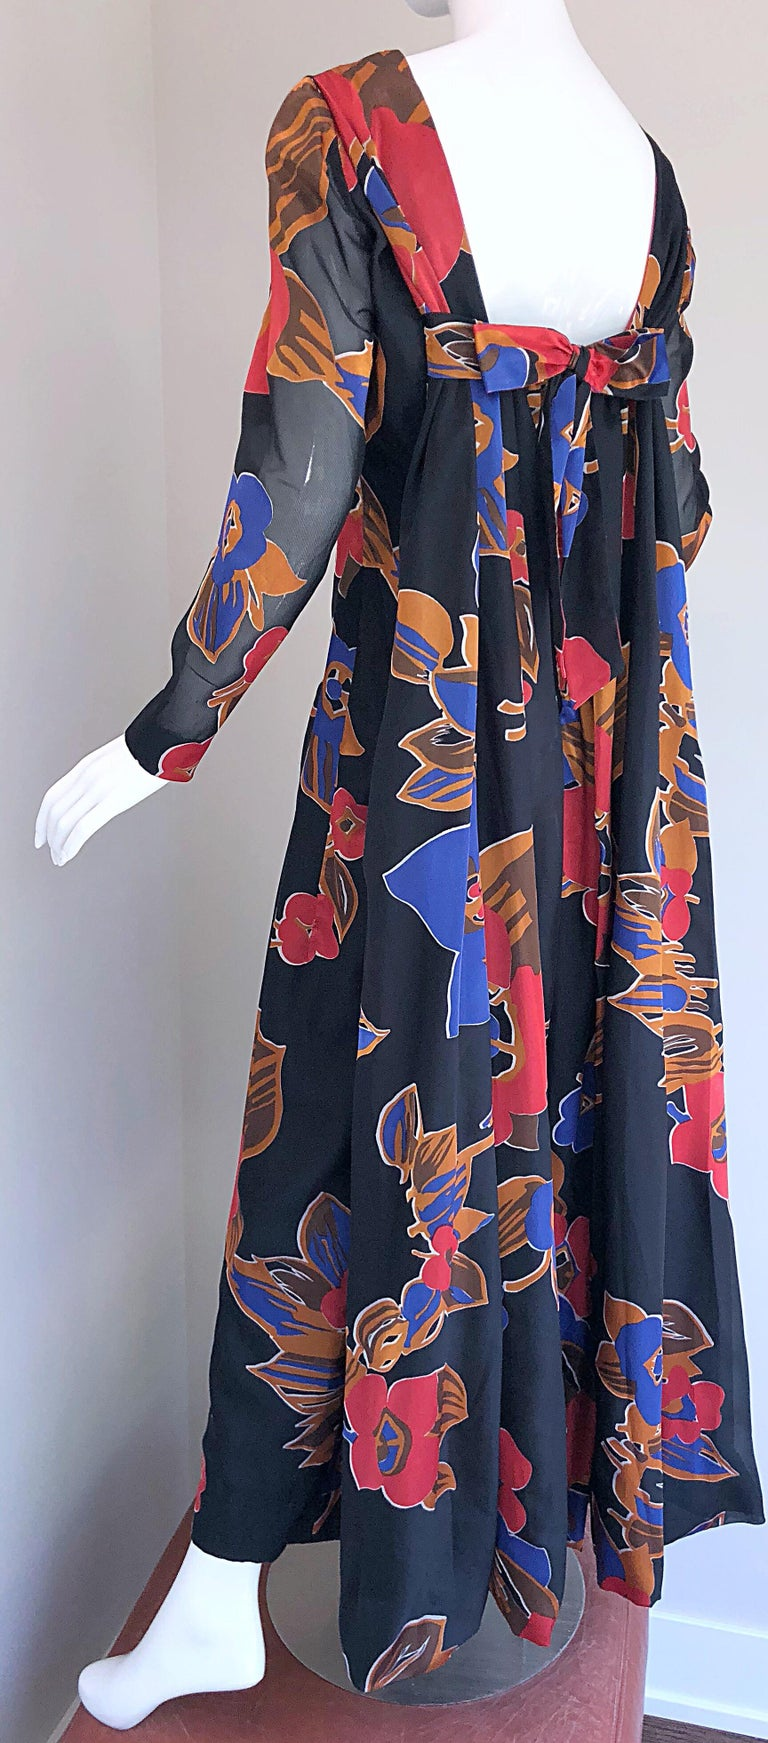 1960s John Boyle Bishop Black + Brown + Red Abstract Trained 60s Gown Maxi Dress For Sale 9